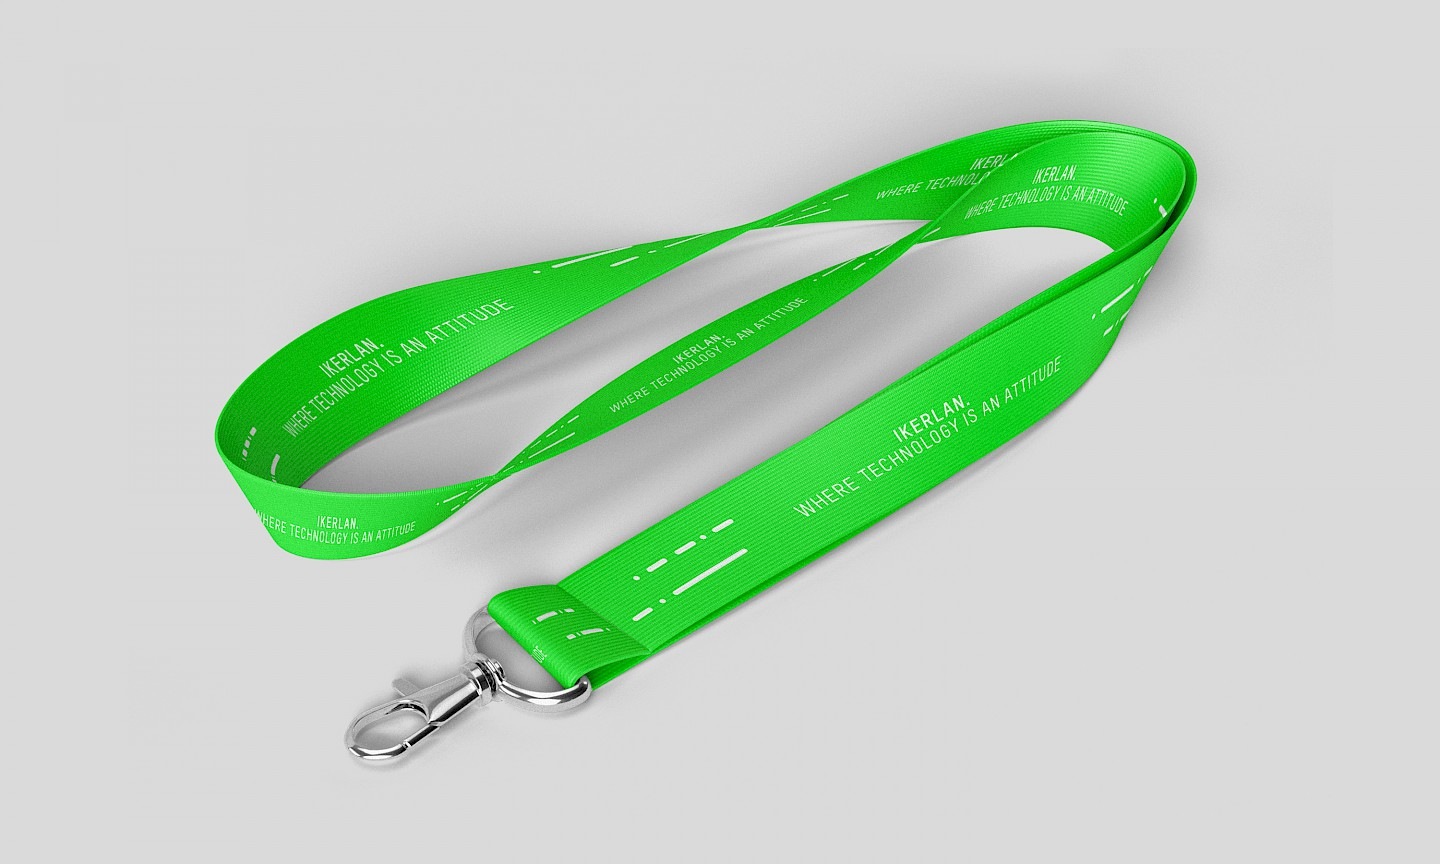 move lanyard ikerlan branding technology 01 design